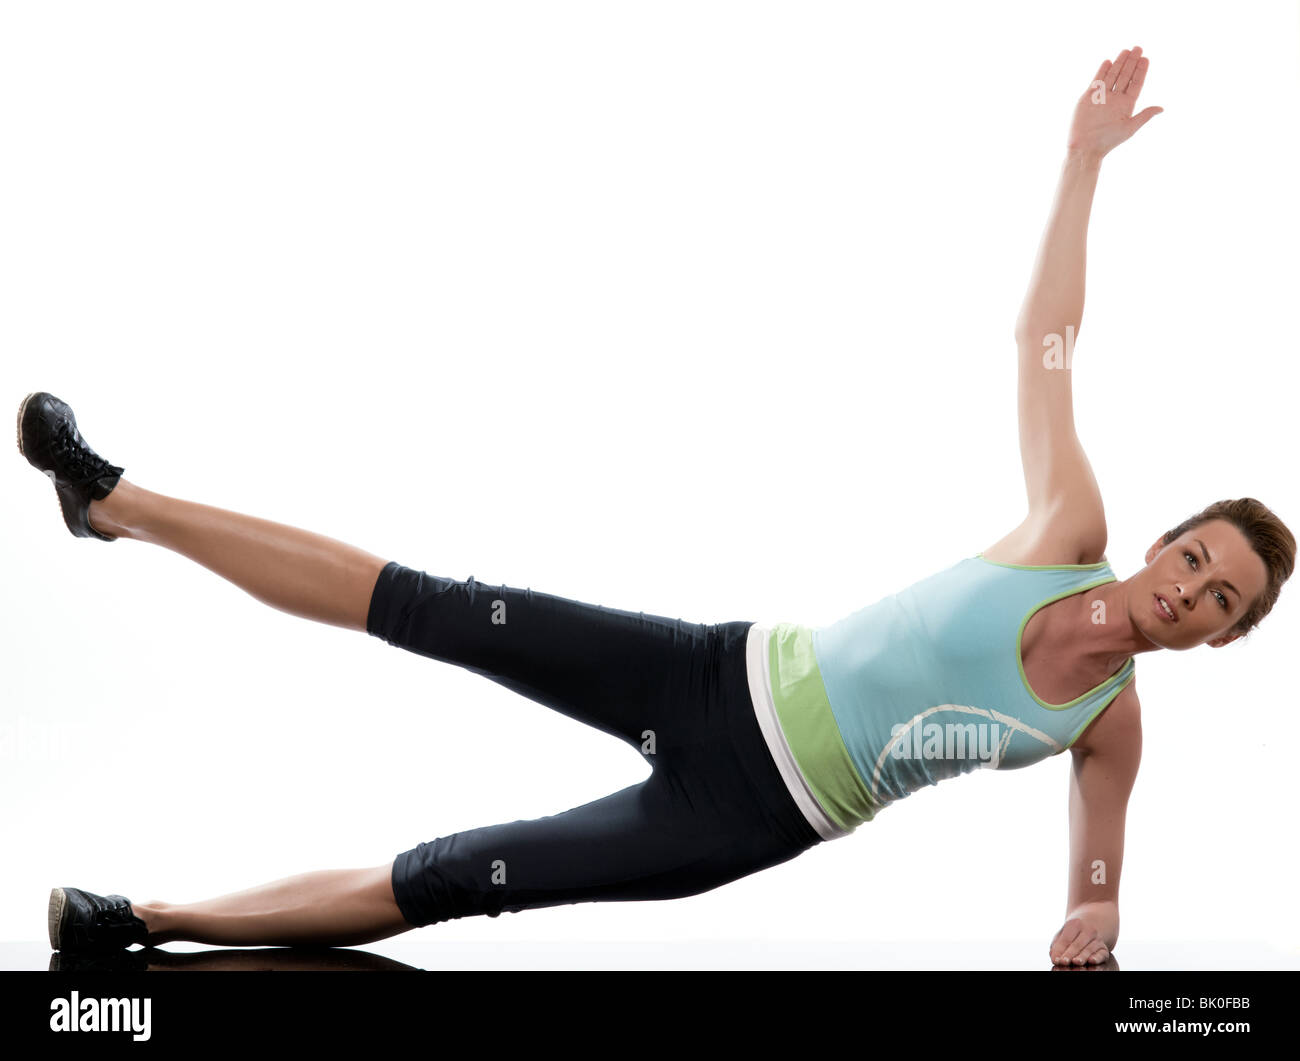 woman on Abdominals workout posture on white background - Stock Image